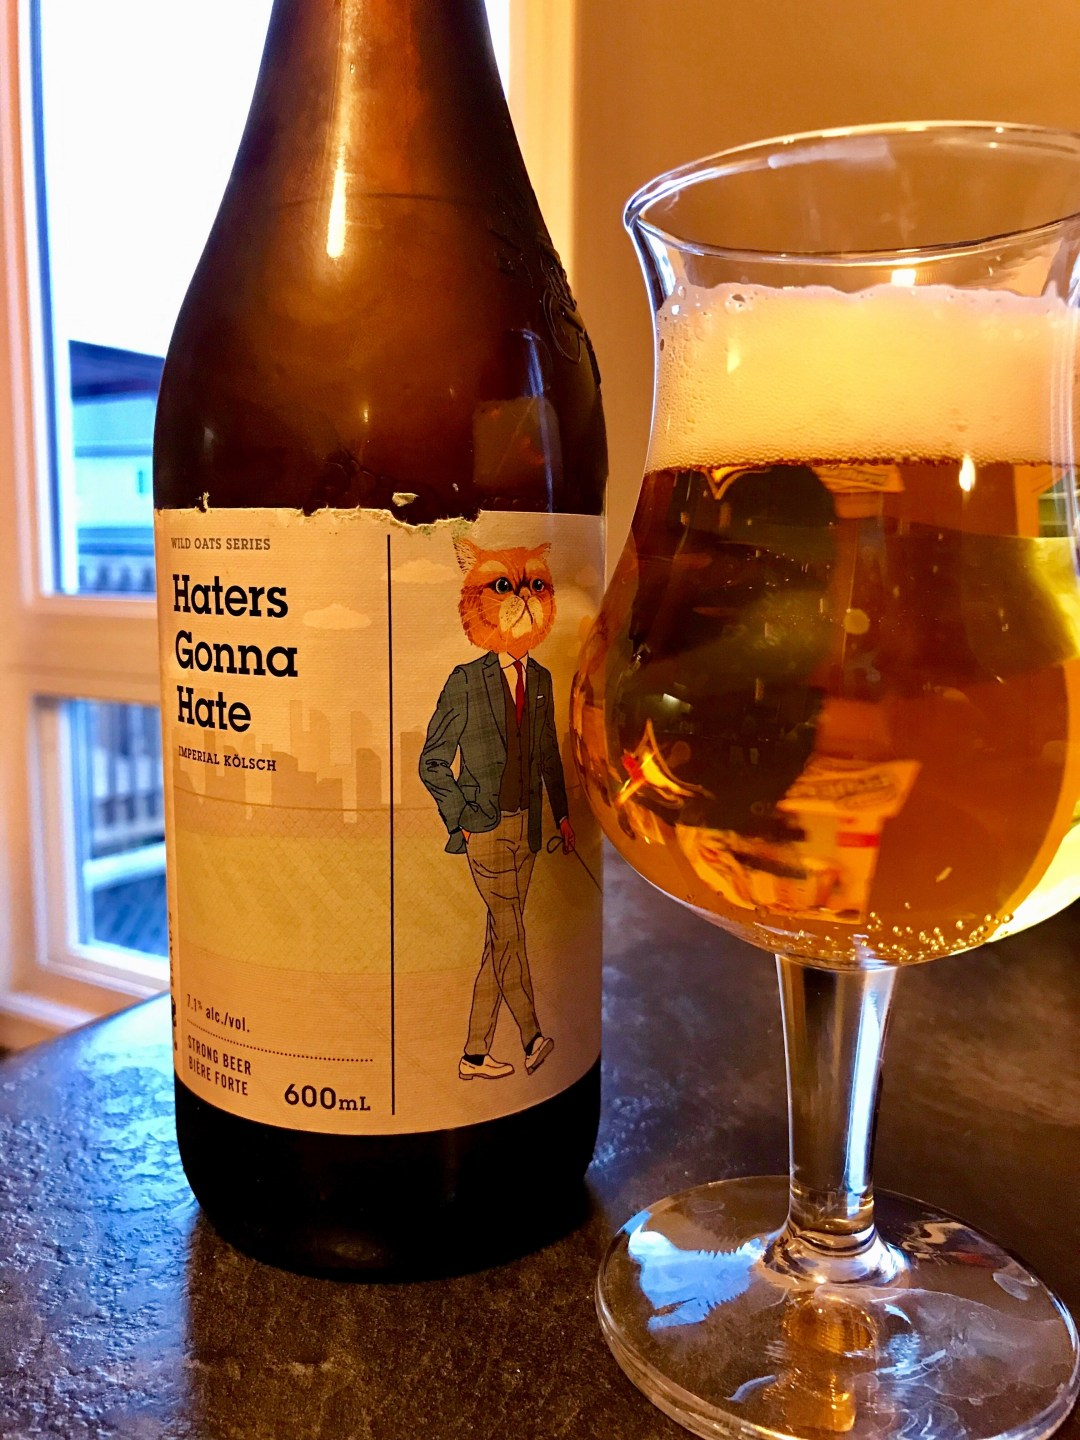 Haters Gonna Hate Imperial Kölsch by Beau's is a great strong beer for the summer that packs the punch that one would seek from a maltier brew.